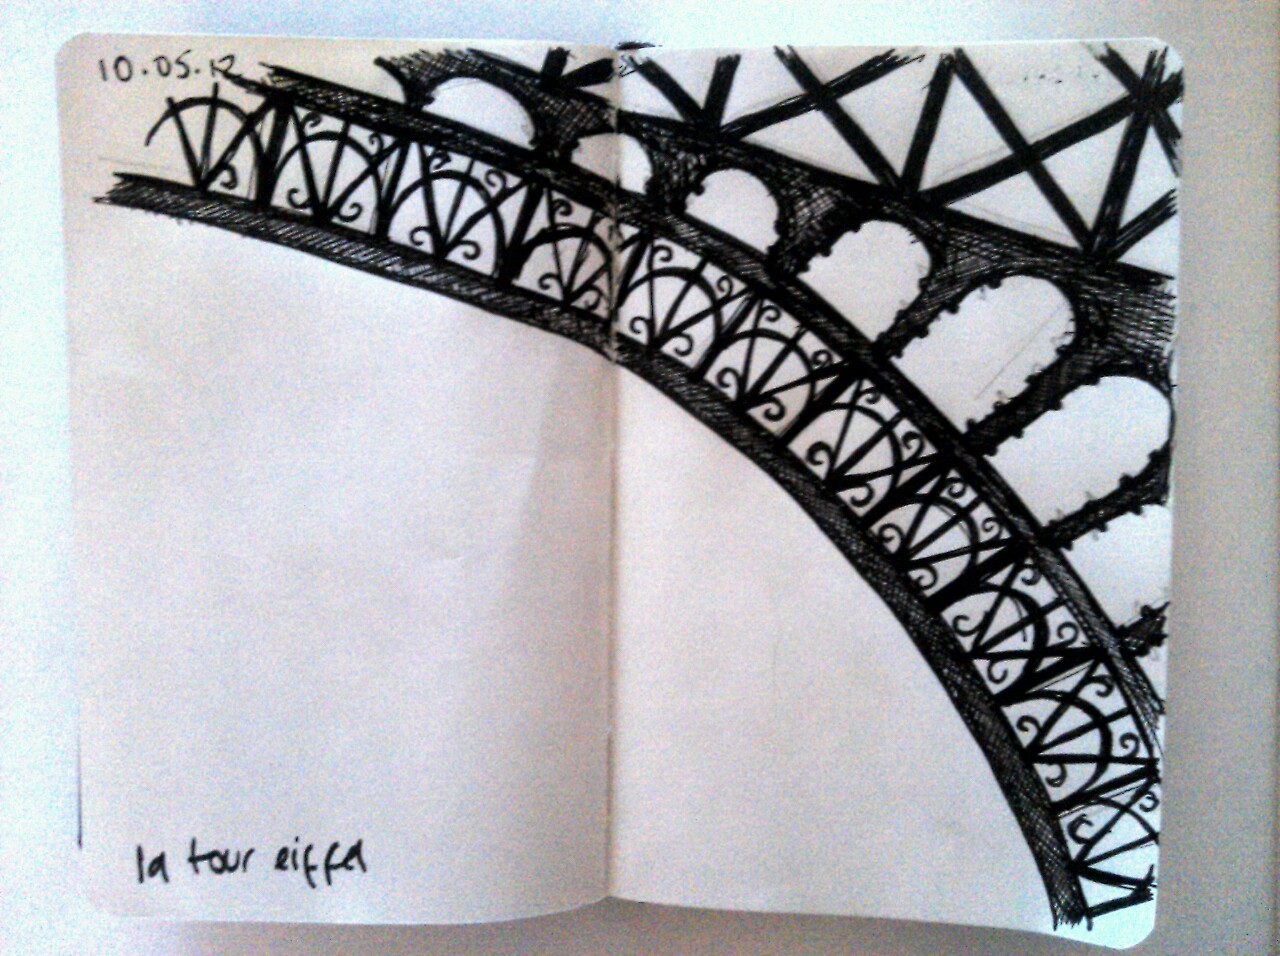 365 drawings later … day 100 … la tour eiffel